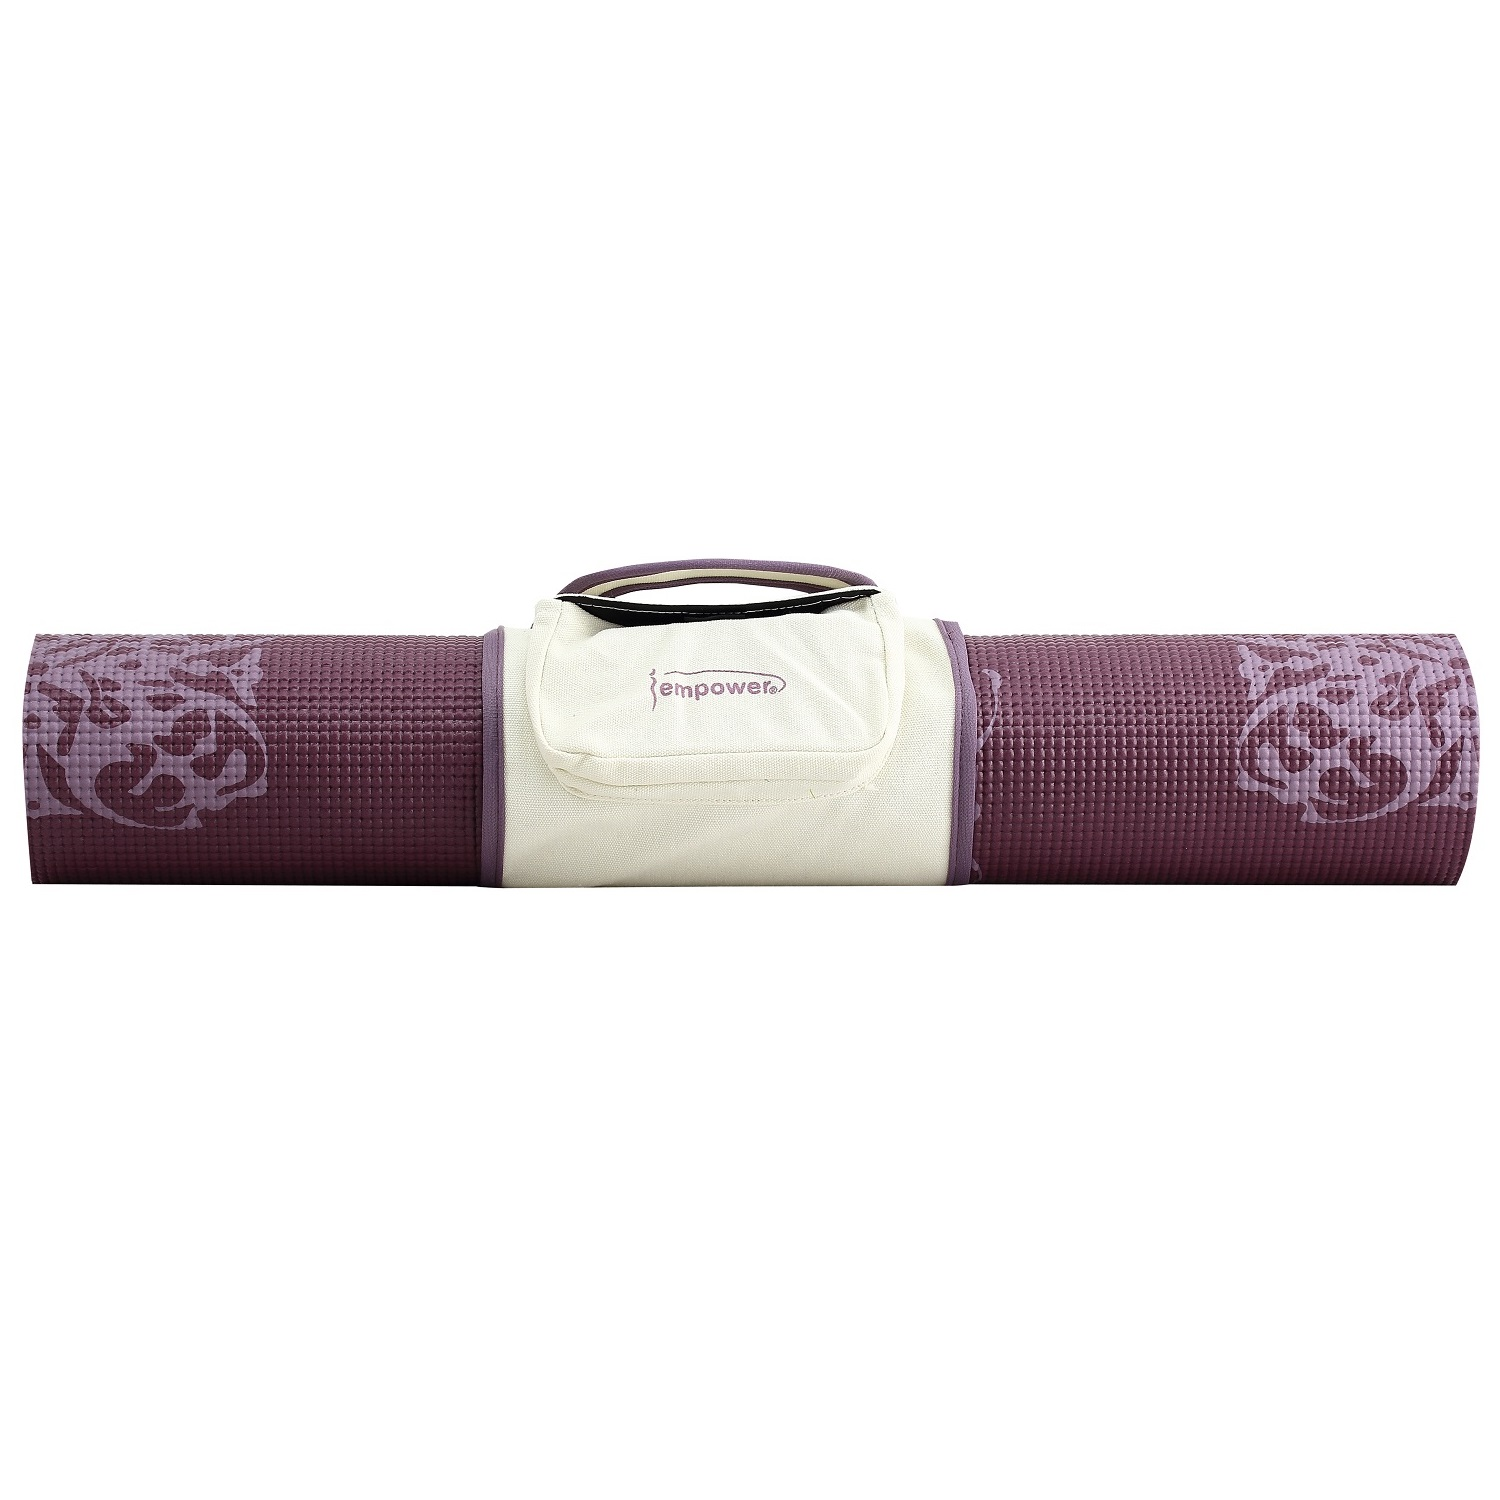 Empower Fitness 5mm Yoga Mat with Clutch - Cranberry Print